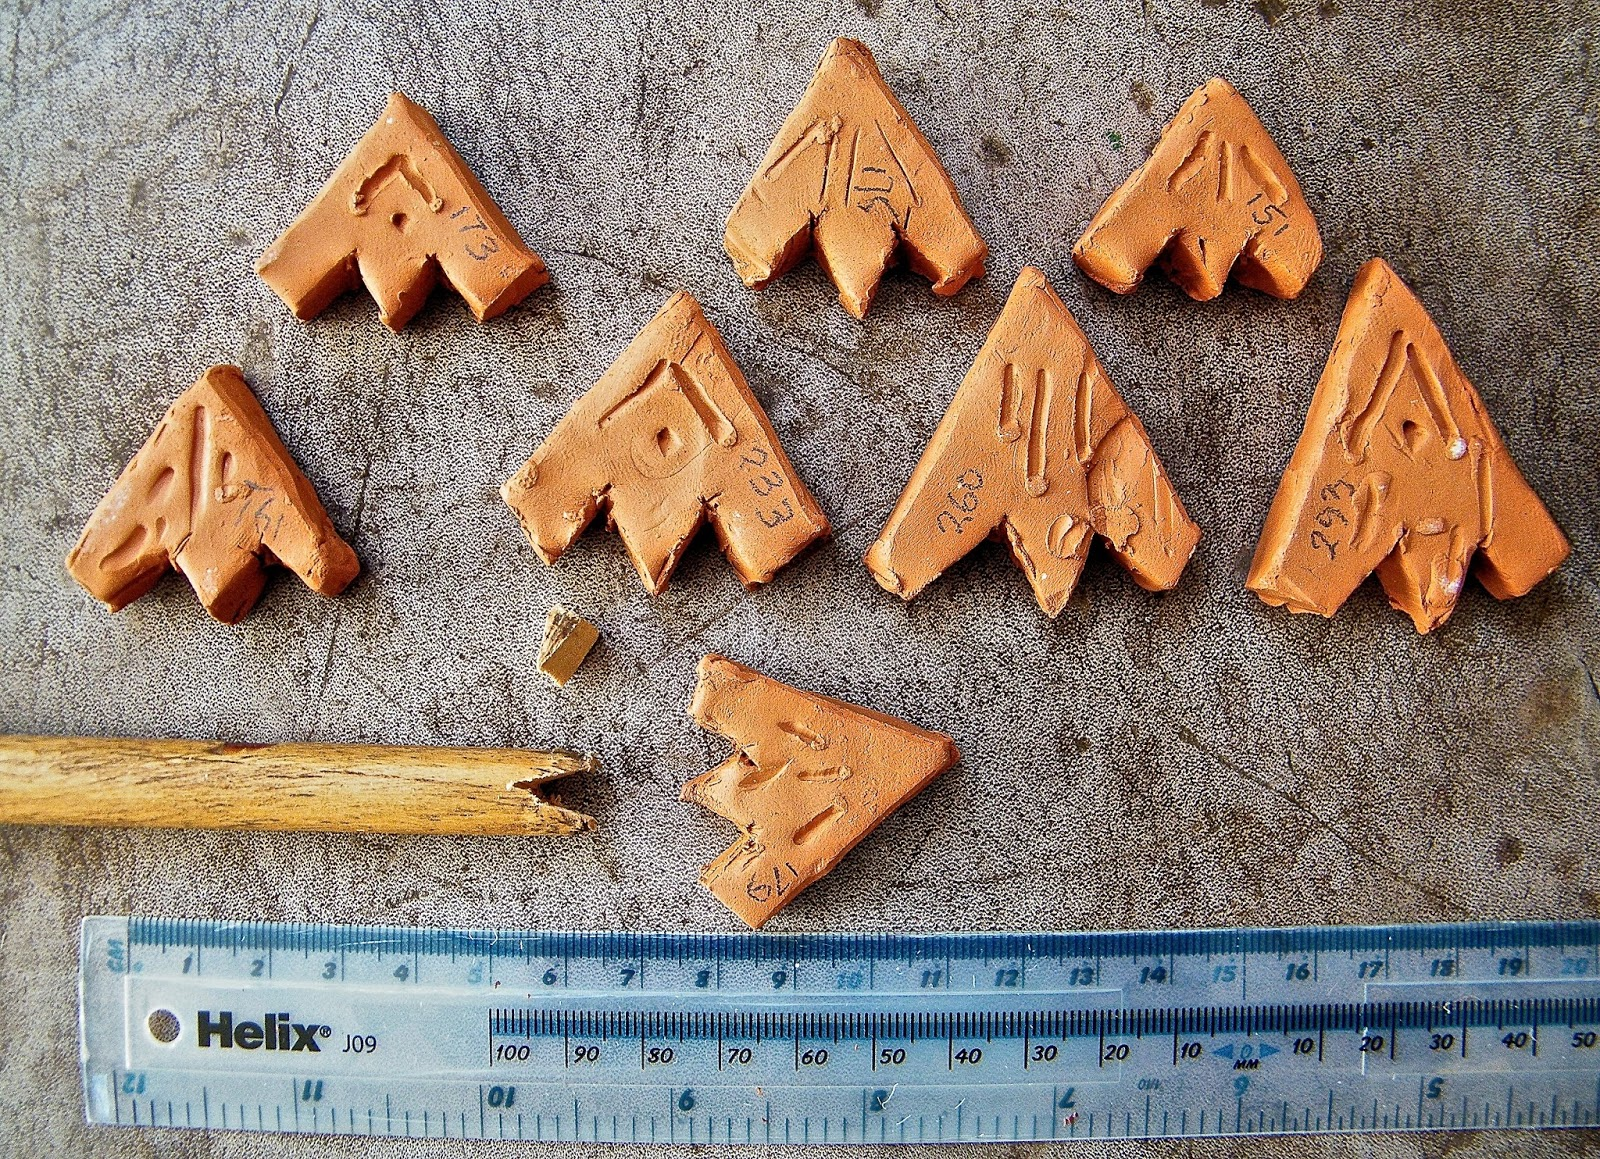 MYCENAEAN FAIENCE / CLAY ARROWHEADS - Part 1